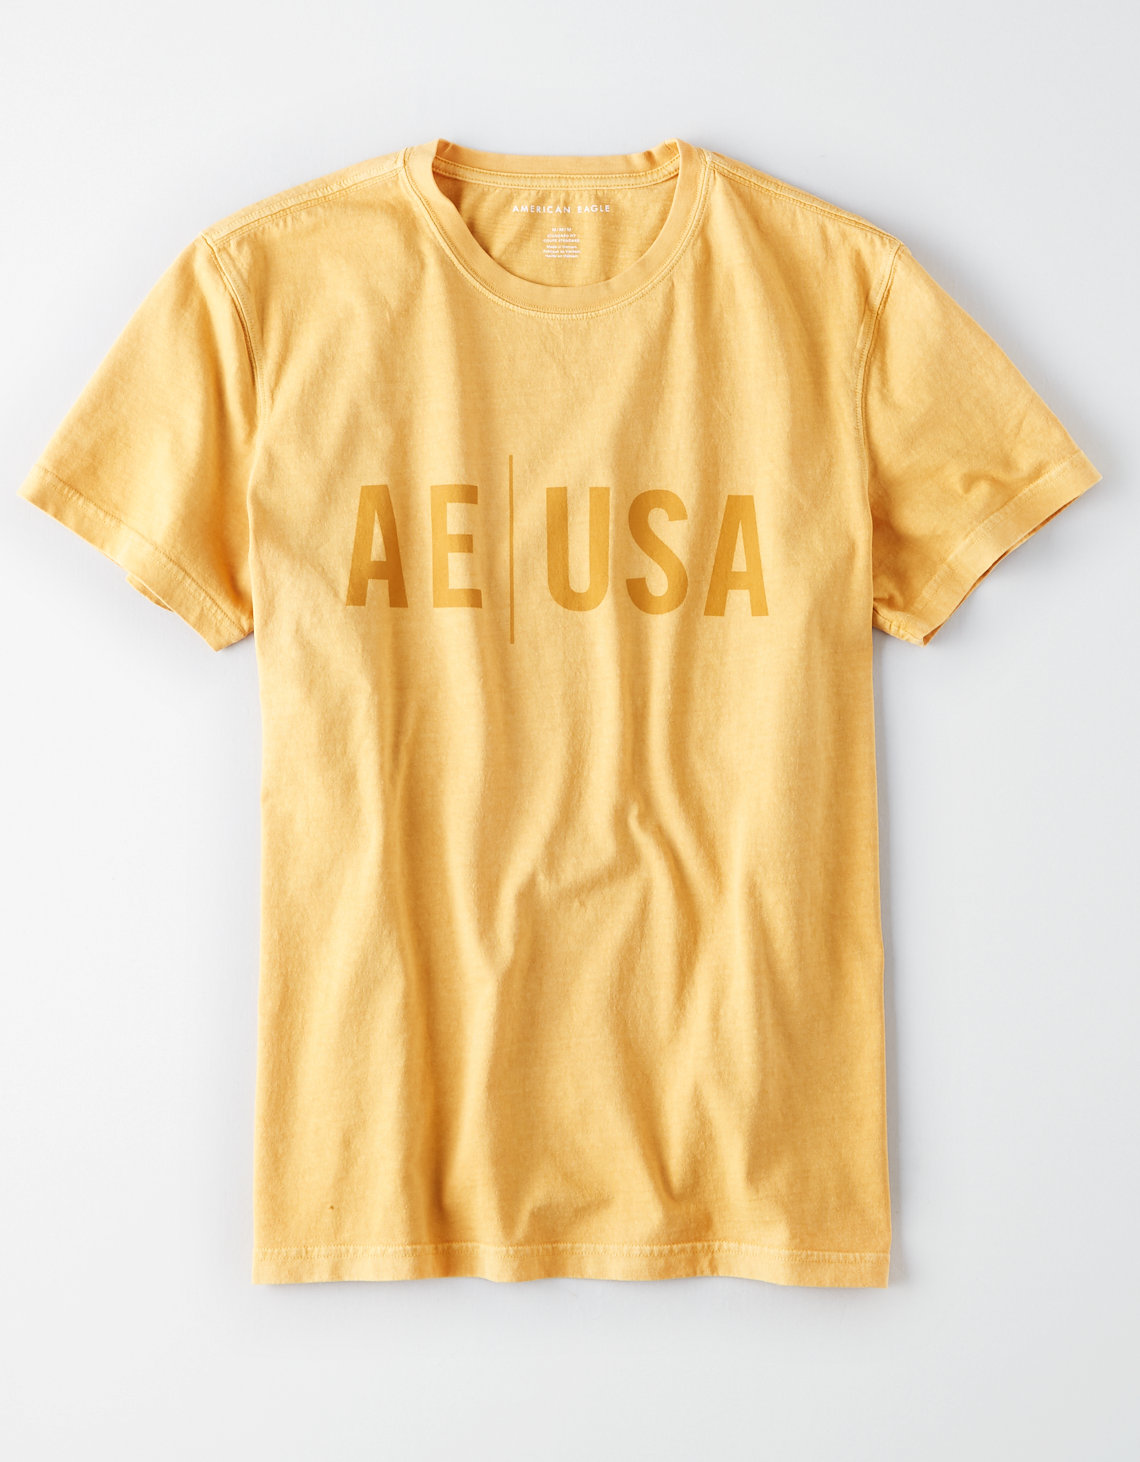 AE Tonal Short Sleeve Graphic T-Shirt